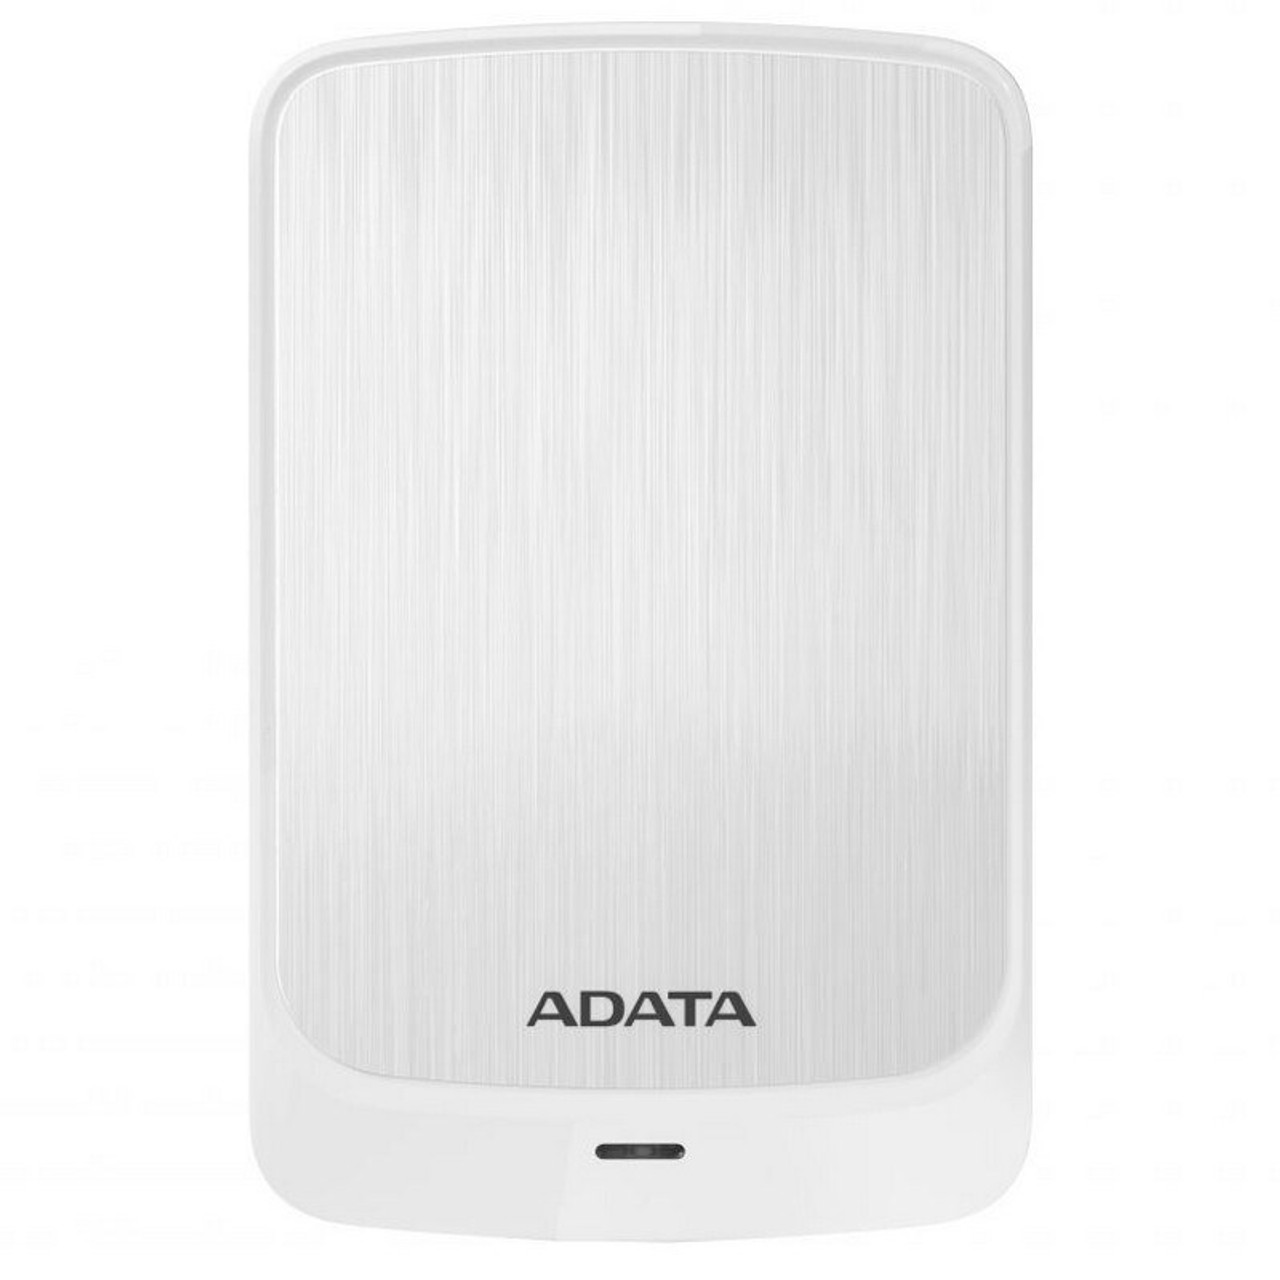 Image for Adata HV320 1TB USB 3.0 Slim Portable External Hard Drive - White CX Computer Superstore